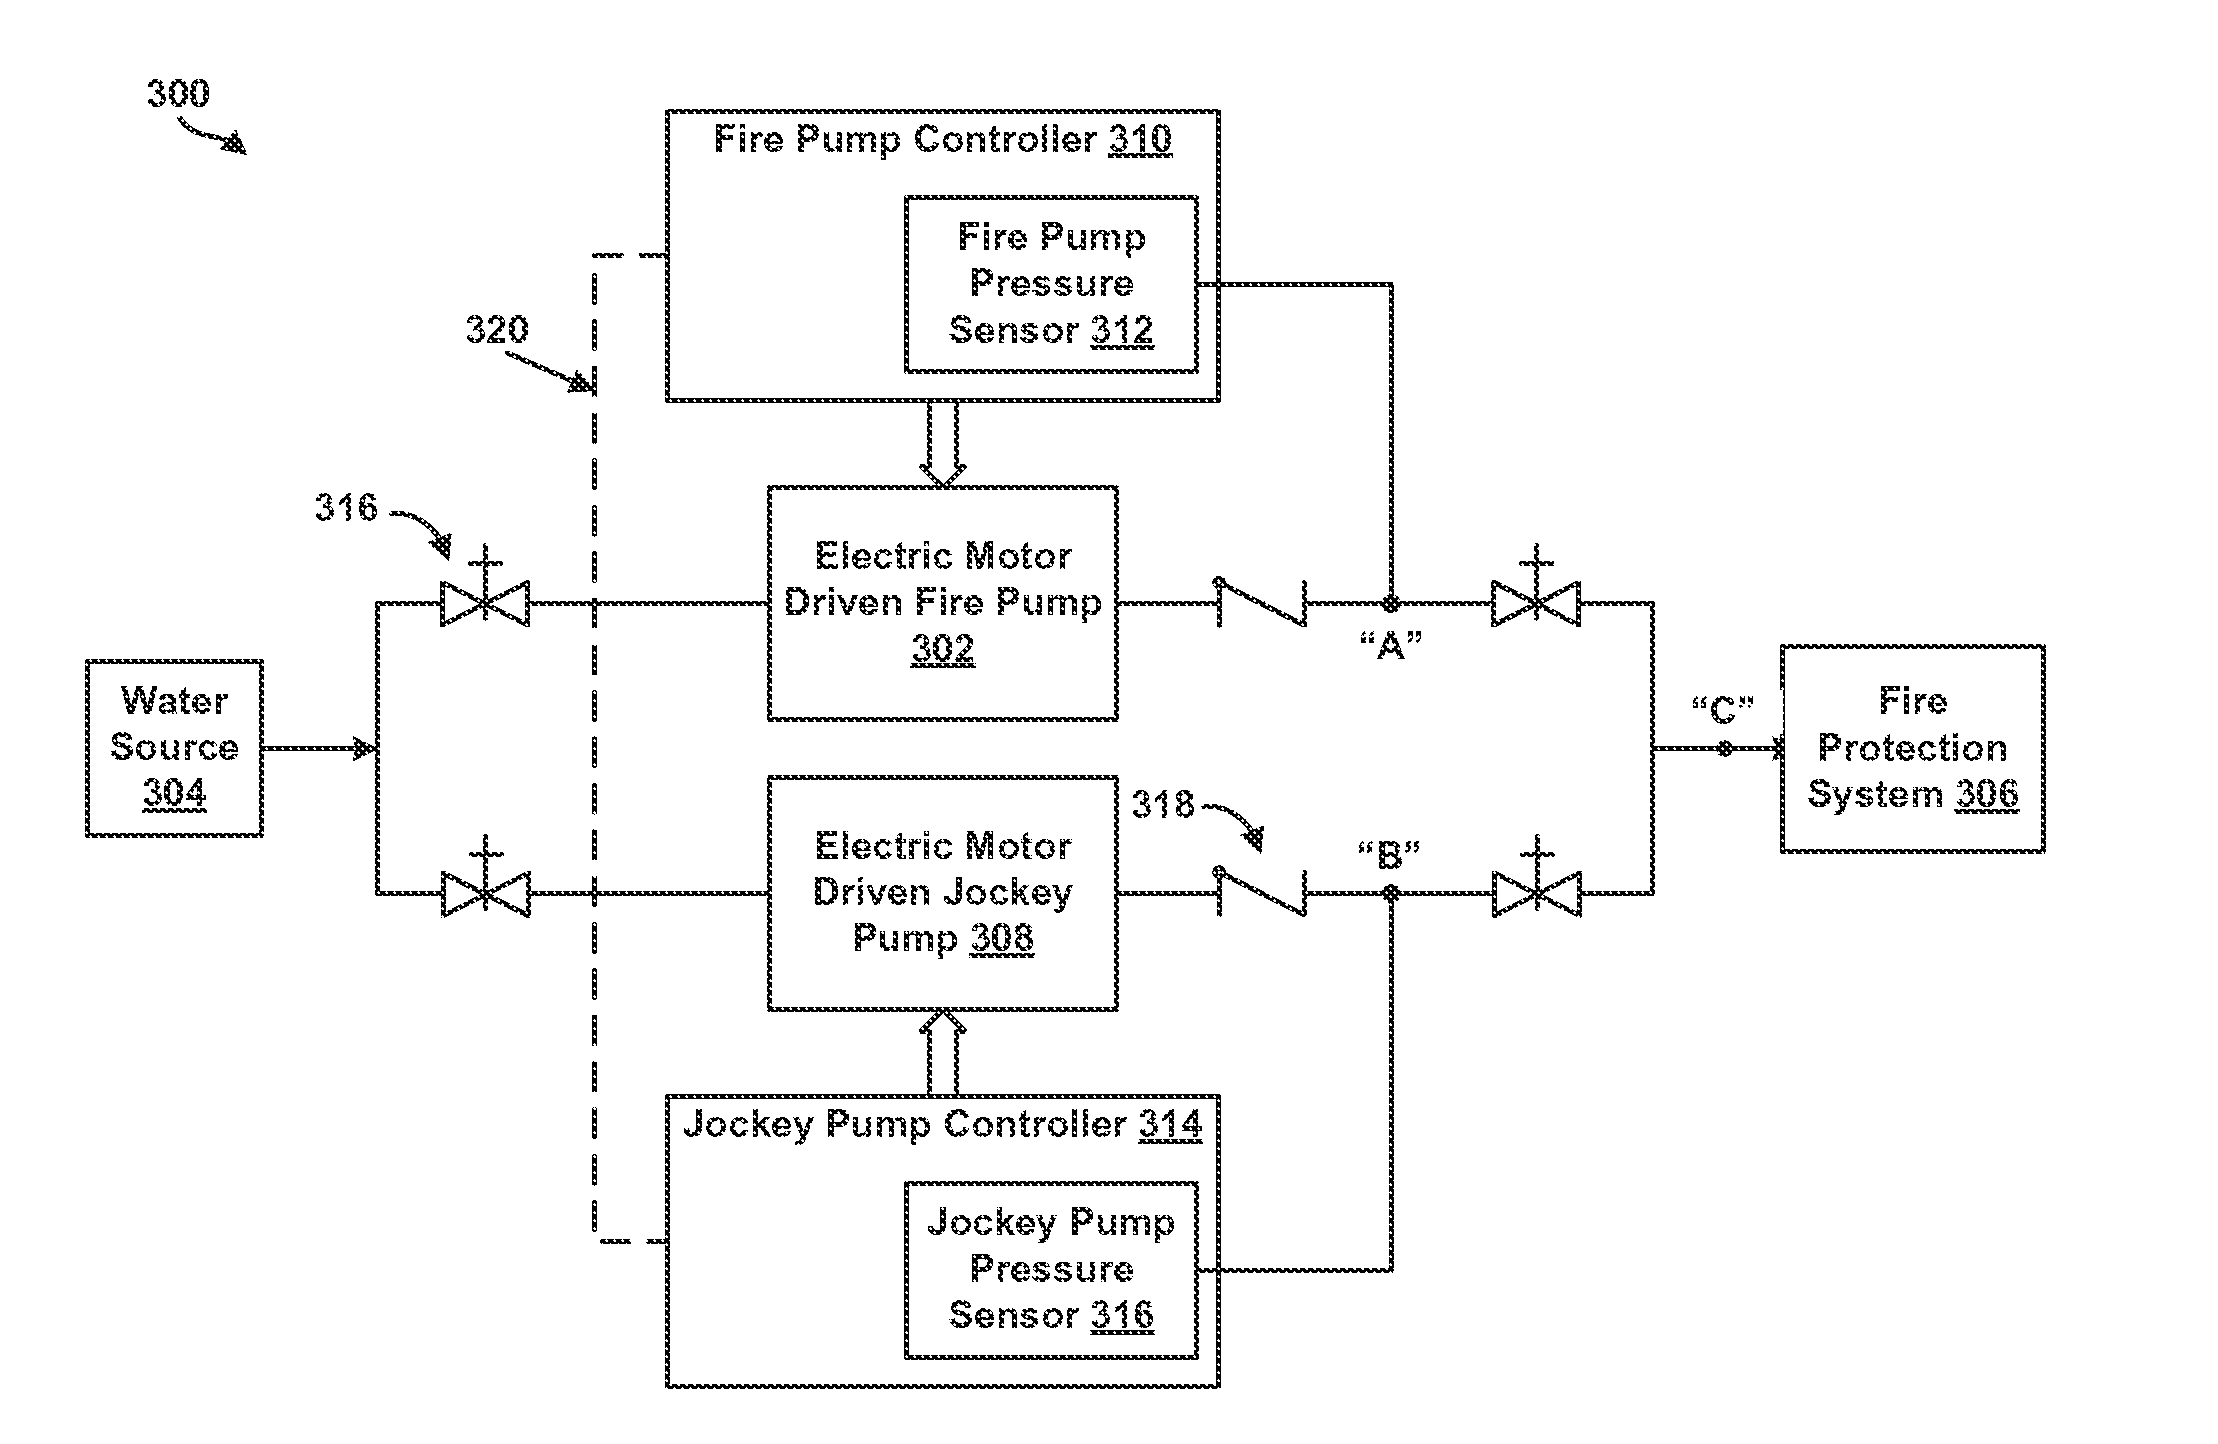 schematic diagram fire pump system schematic image patent us20130343911 dual redundancy in fire pump controllers on schematic diagram fire pump system